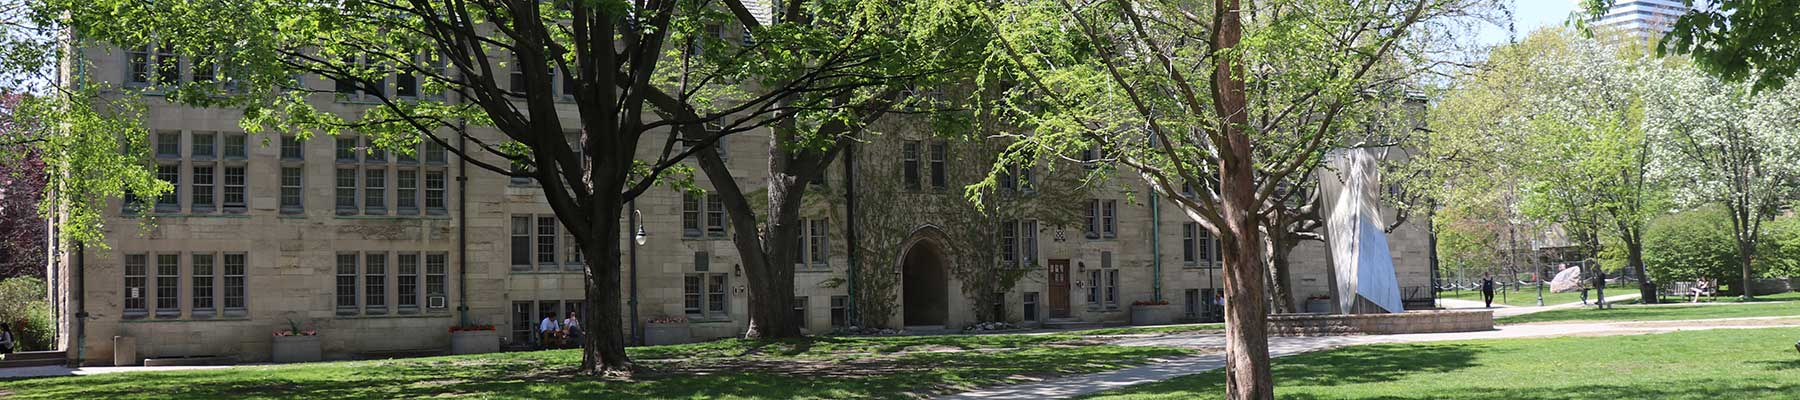 COVID-19: Cancellations and Closures at the University of St. Michael's College